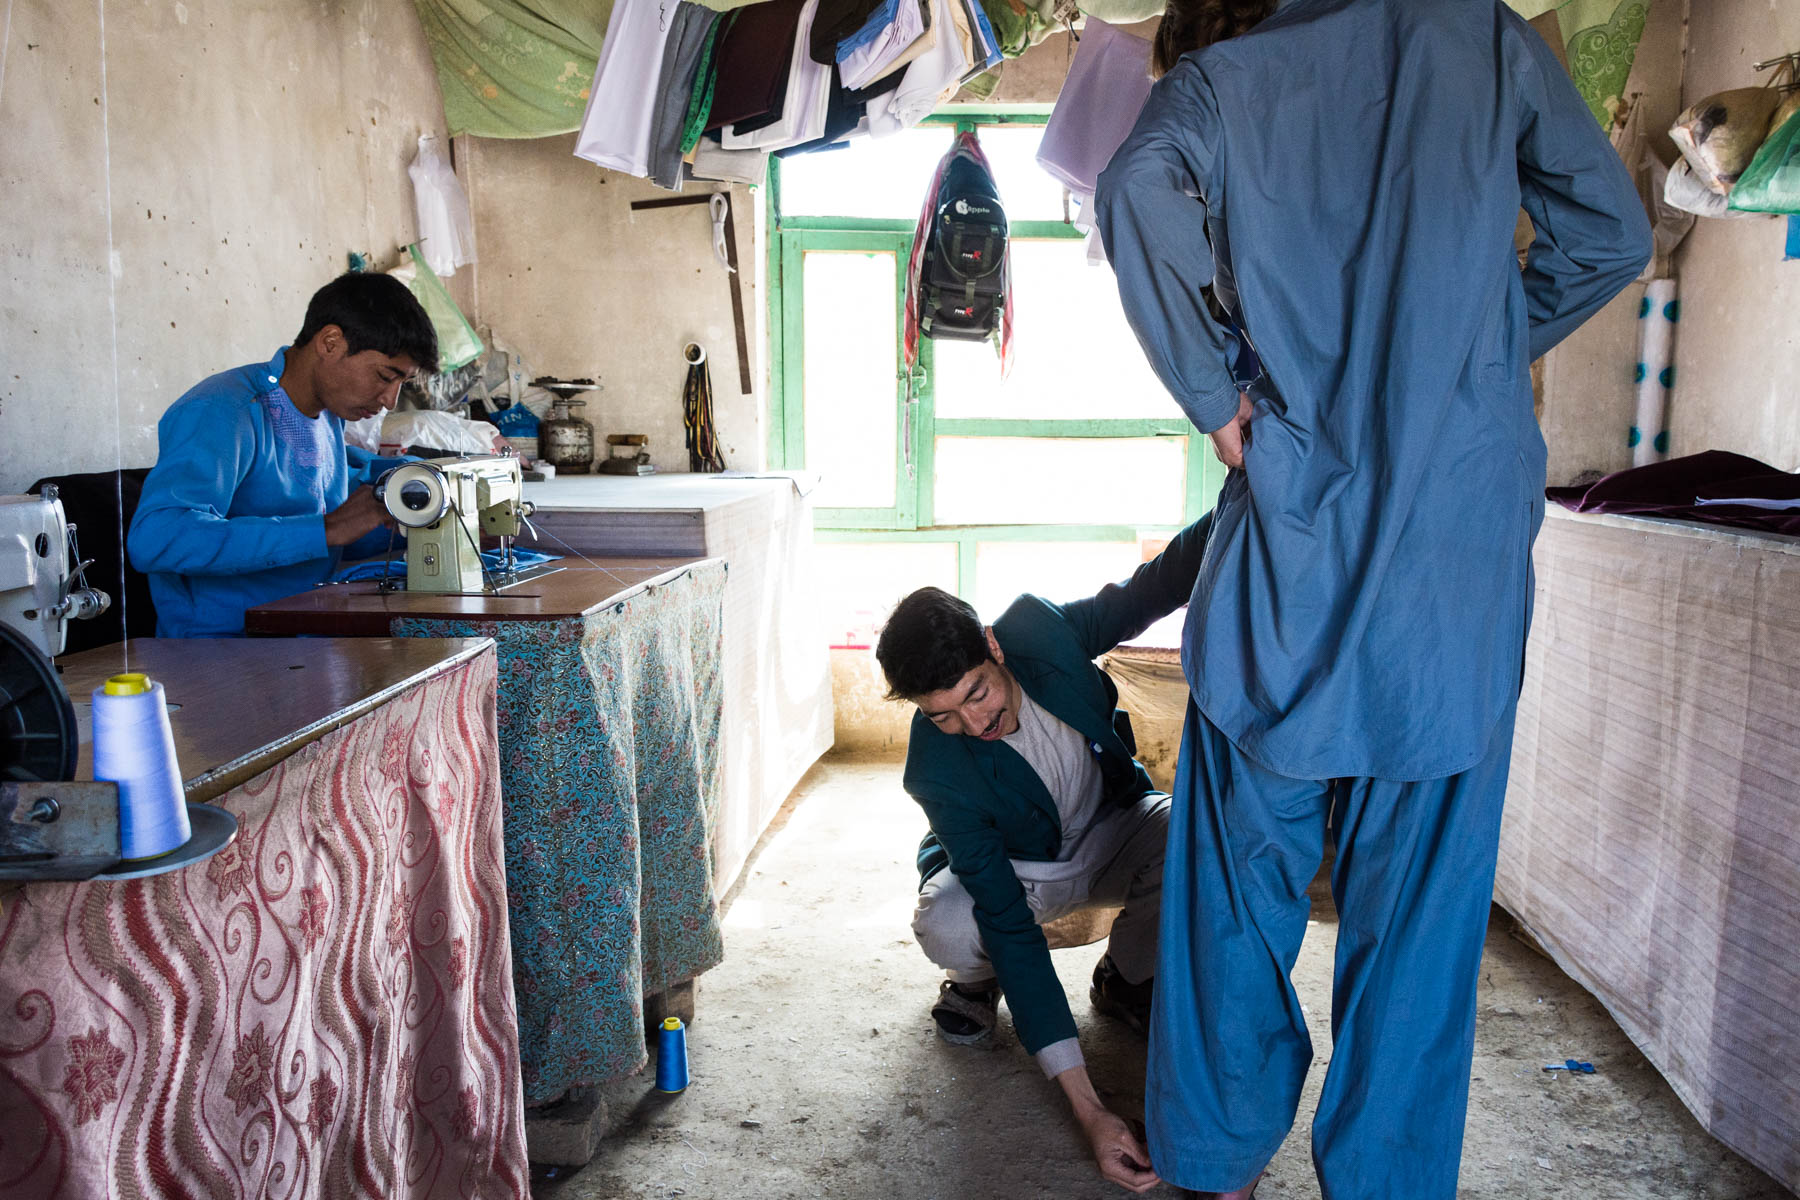 Getting measured for a new shalwar kameez by a tailor in Bamiyan,  Afghanistan - Lost